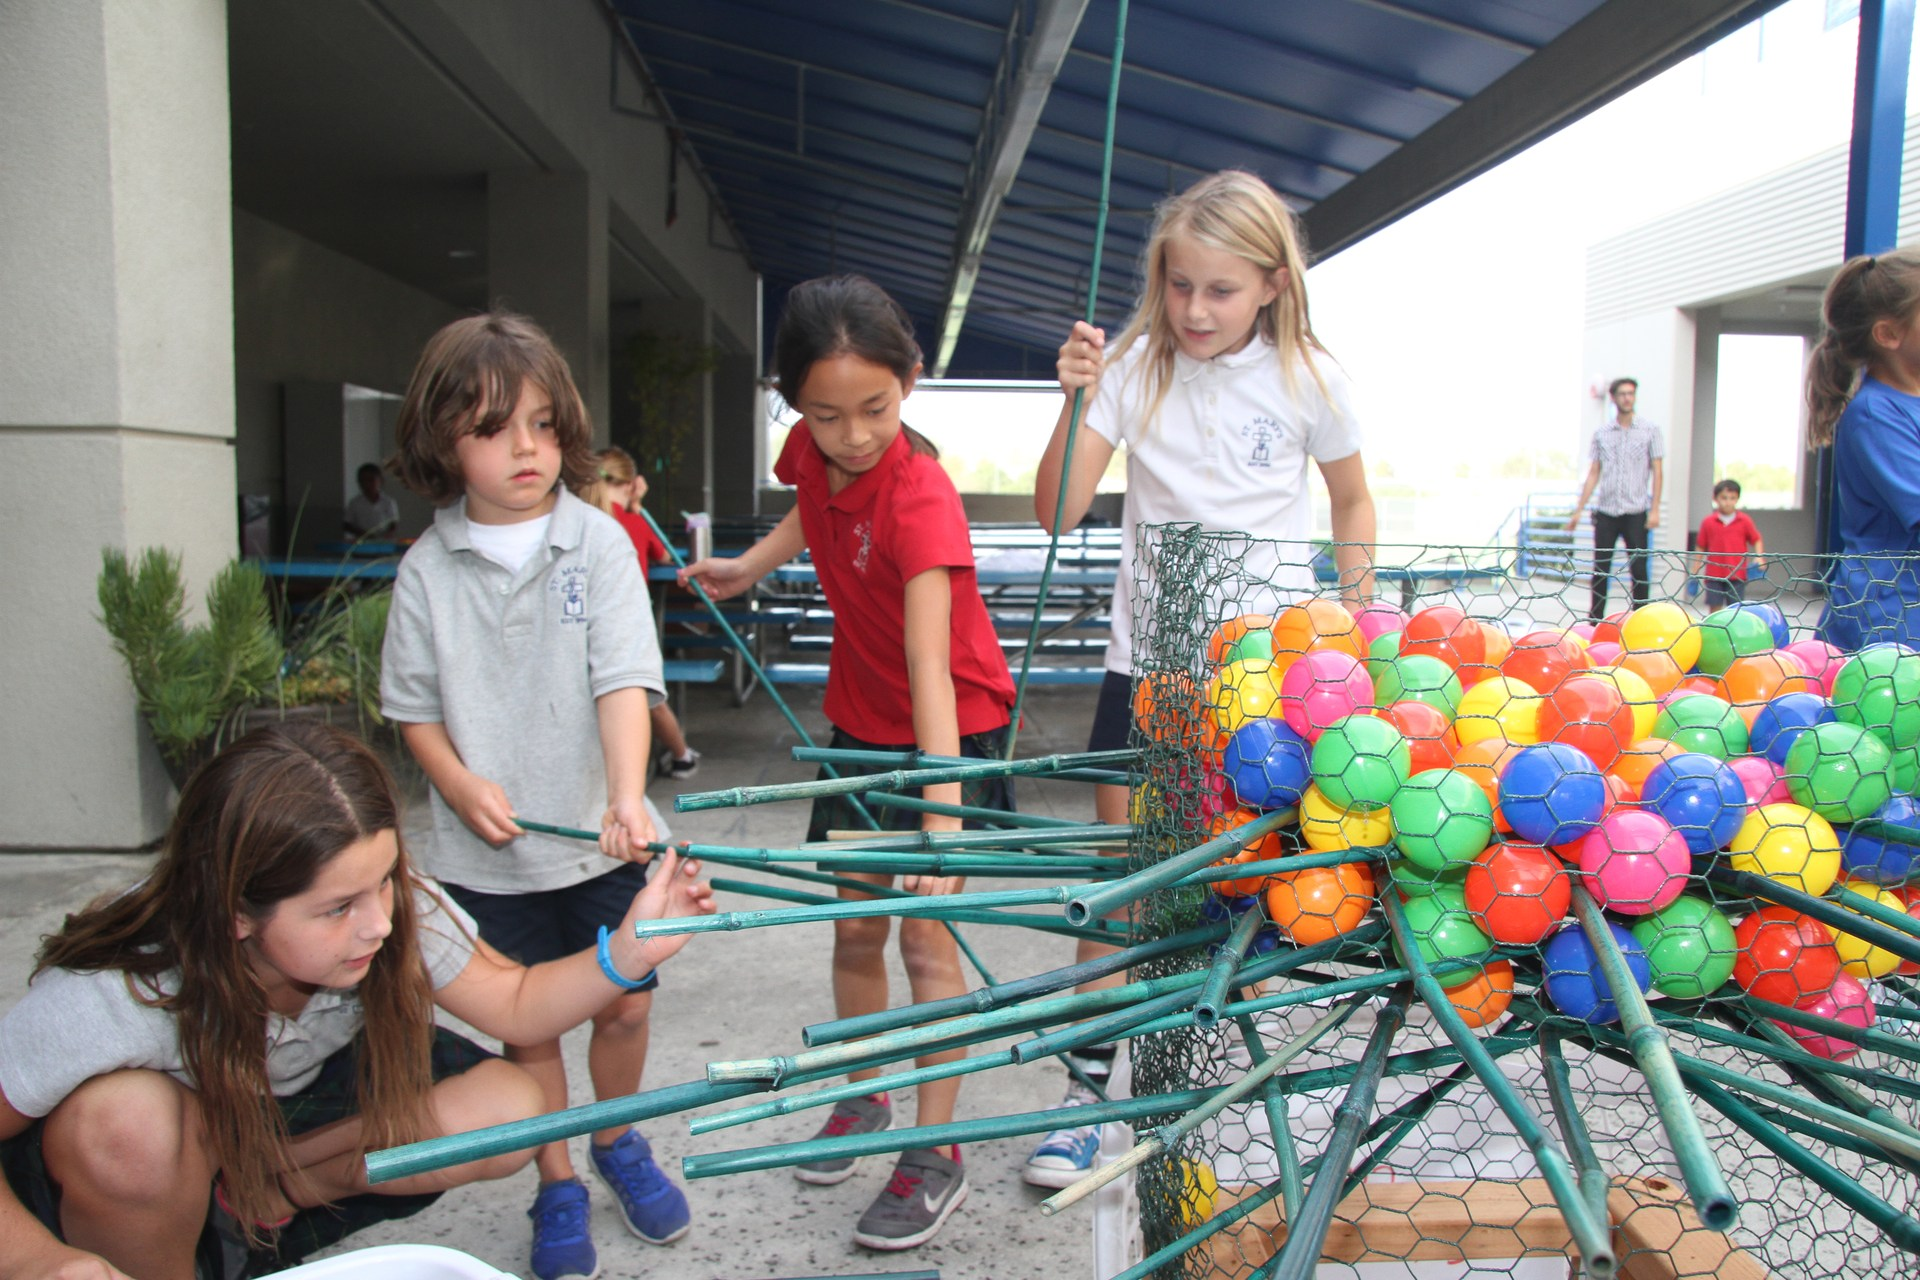 Kids playing giant Kerplunk game after school care